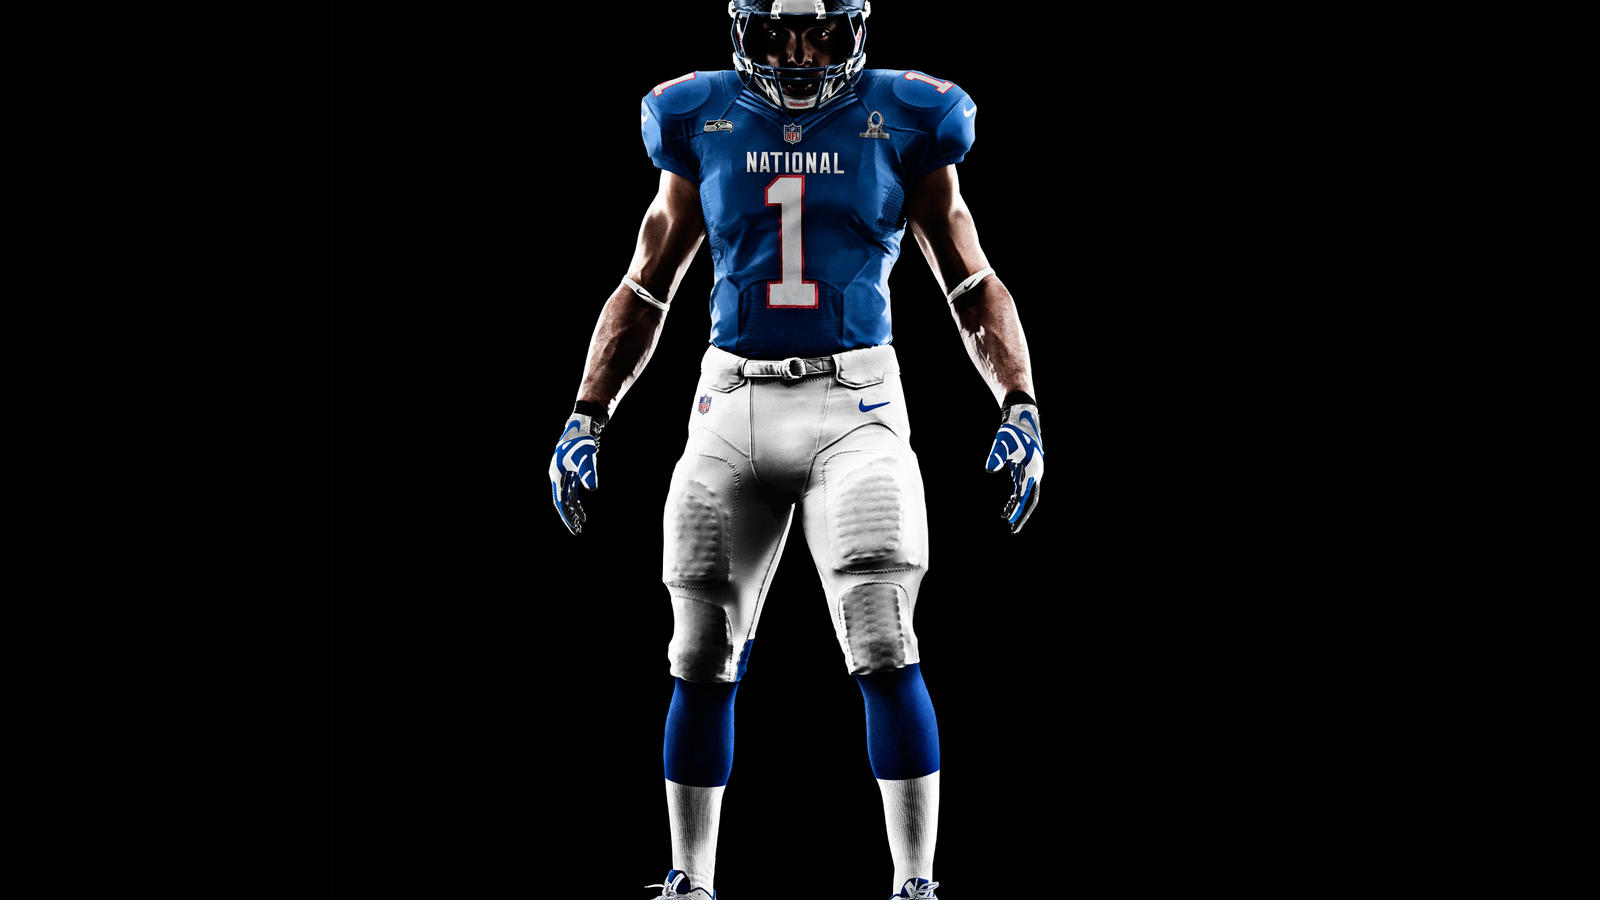 quality design efe85 22dcf New NFL Pro Bowl uniforms combine classic American design ...